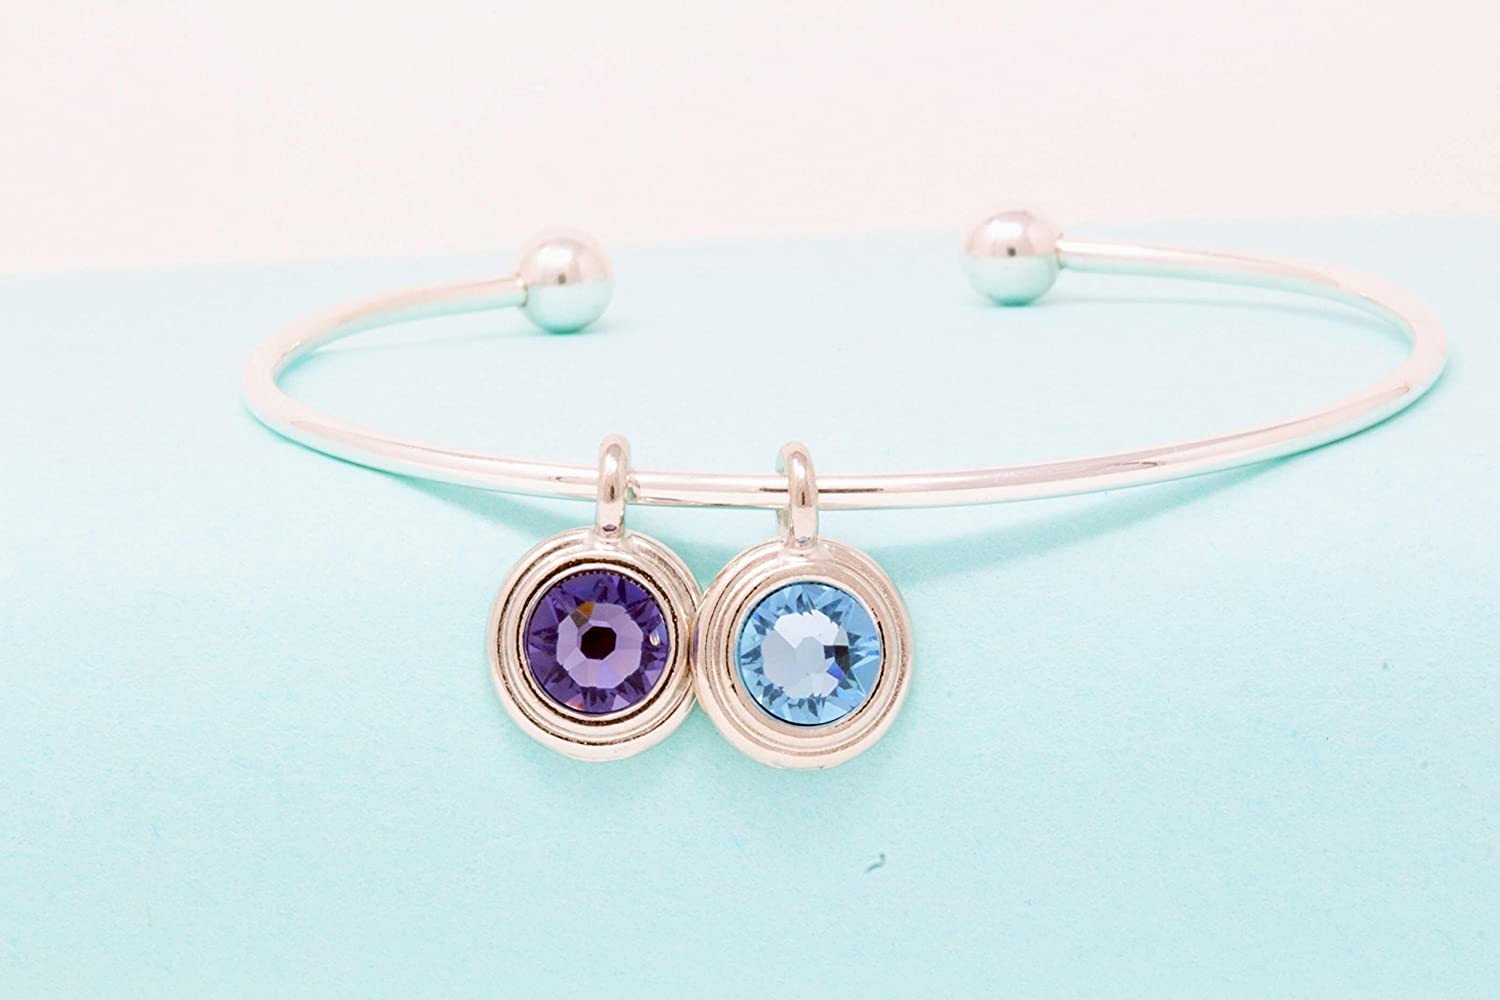 Sterling Silver Bangle Bracelet With Birthstone Charm